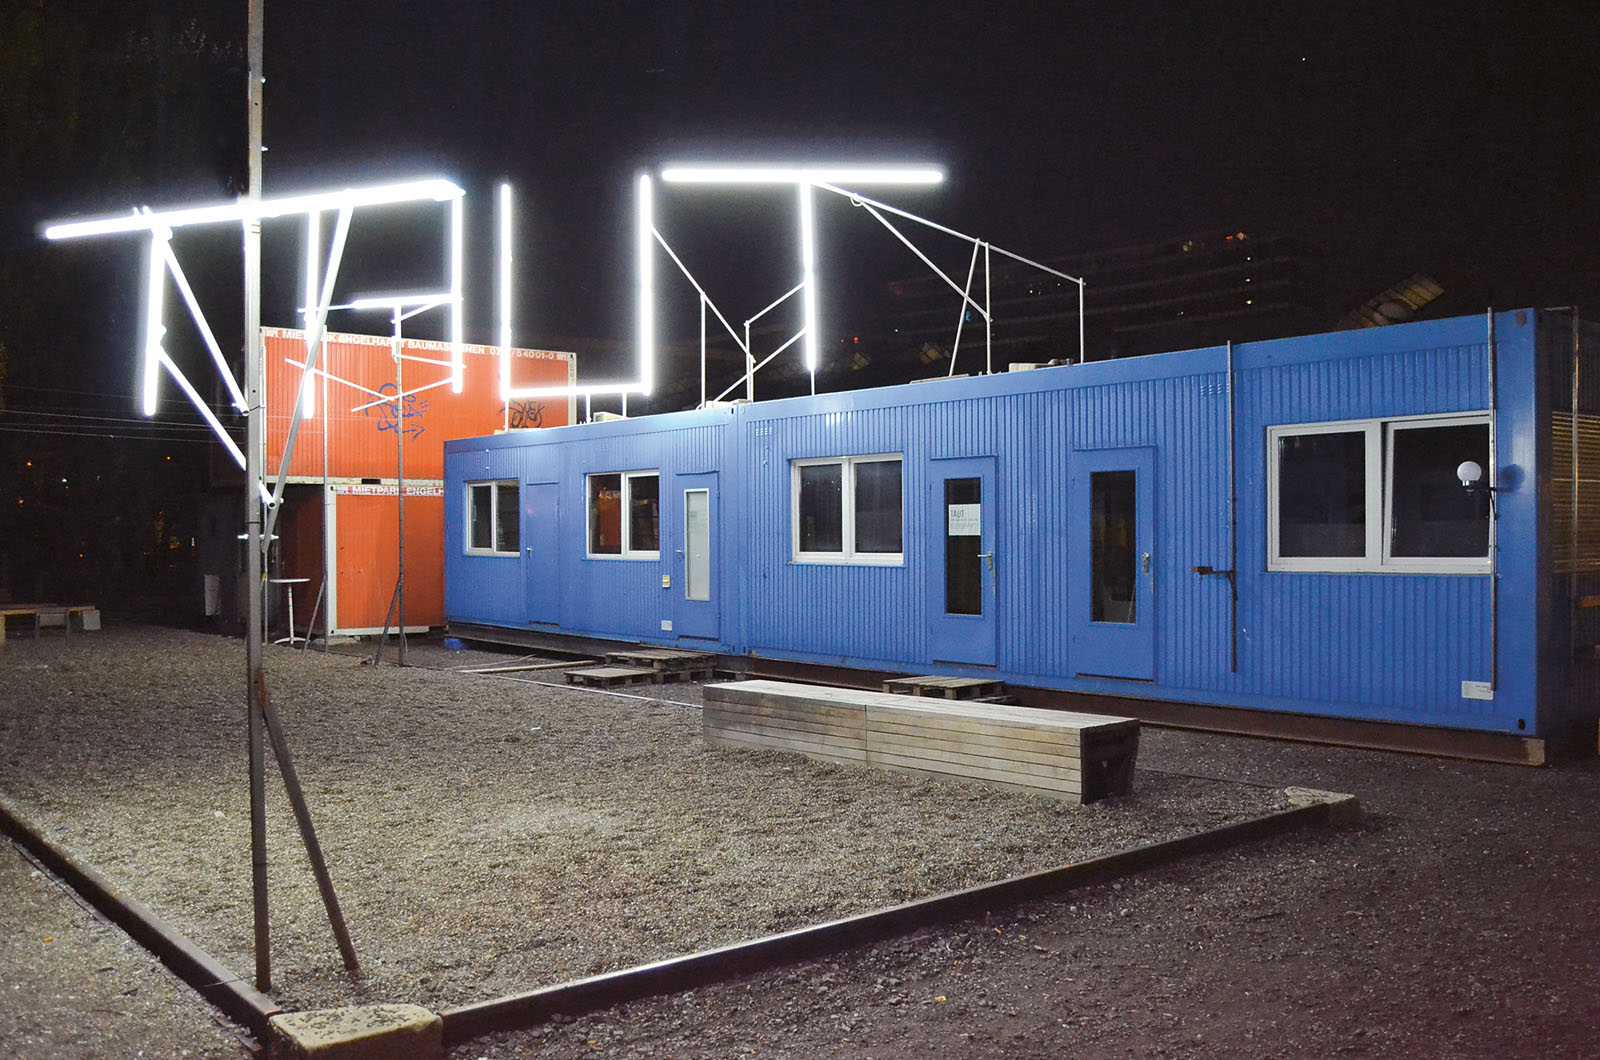 Lange Nacht der Museen Stuttgart - Kunstverein Wagenhalle Container